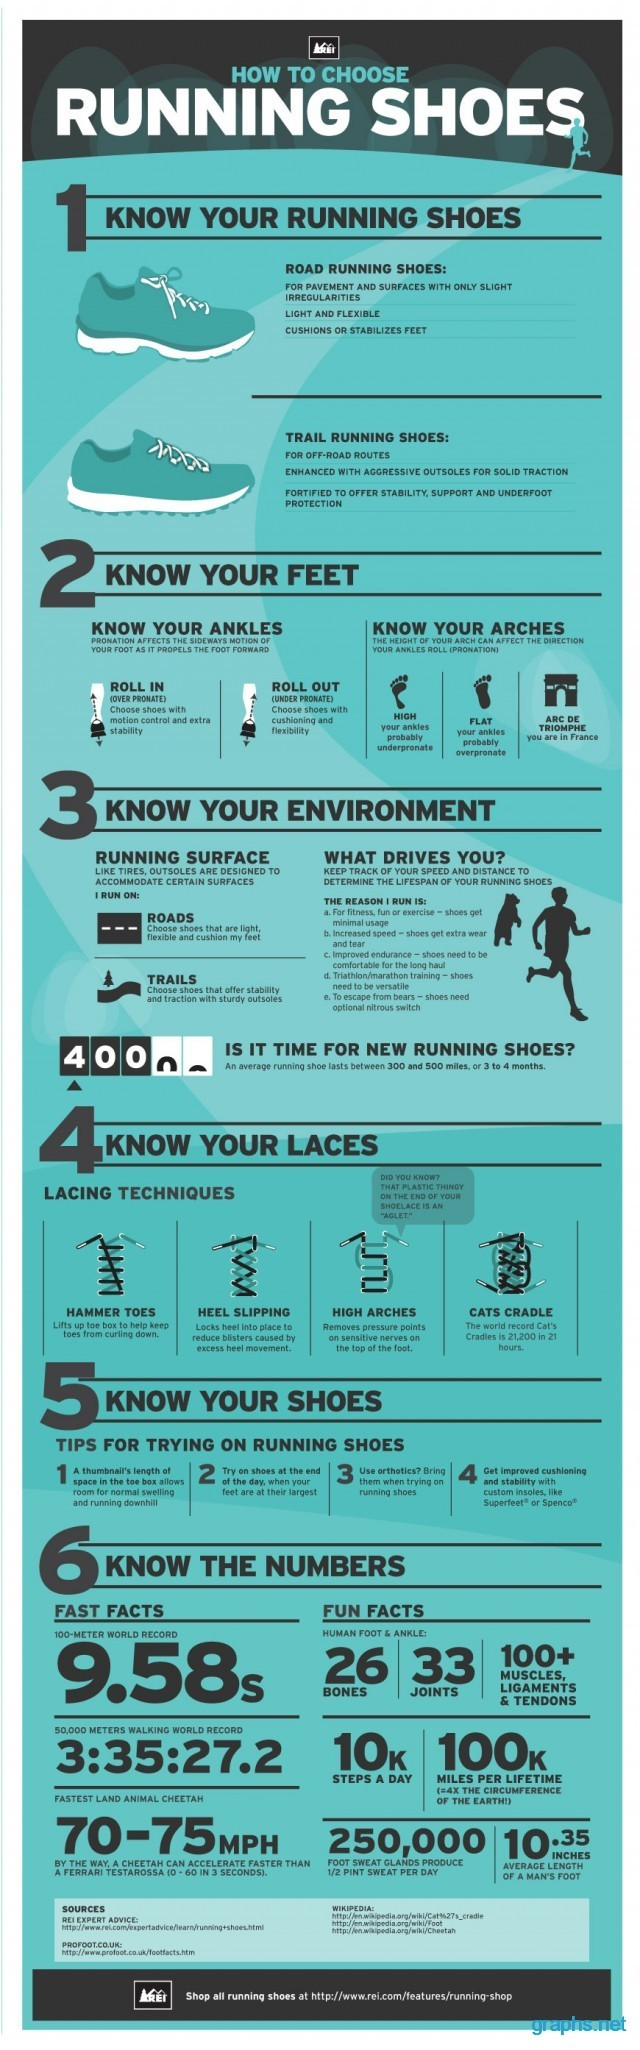 running shoes facts